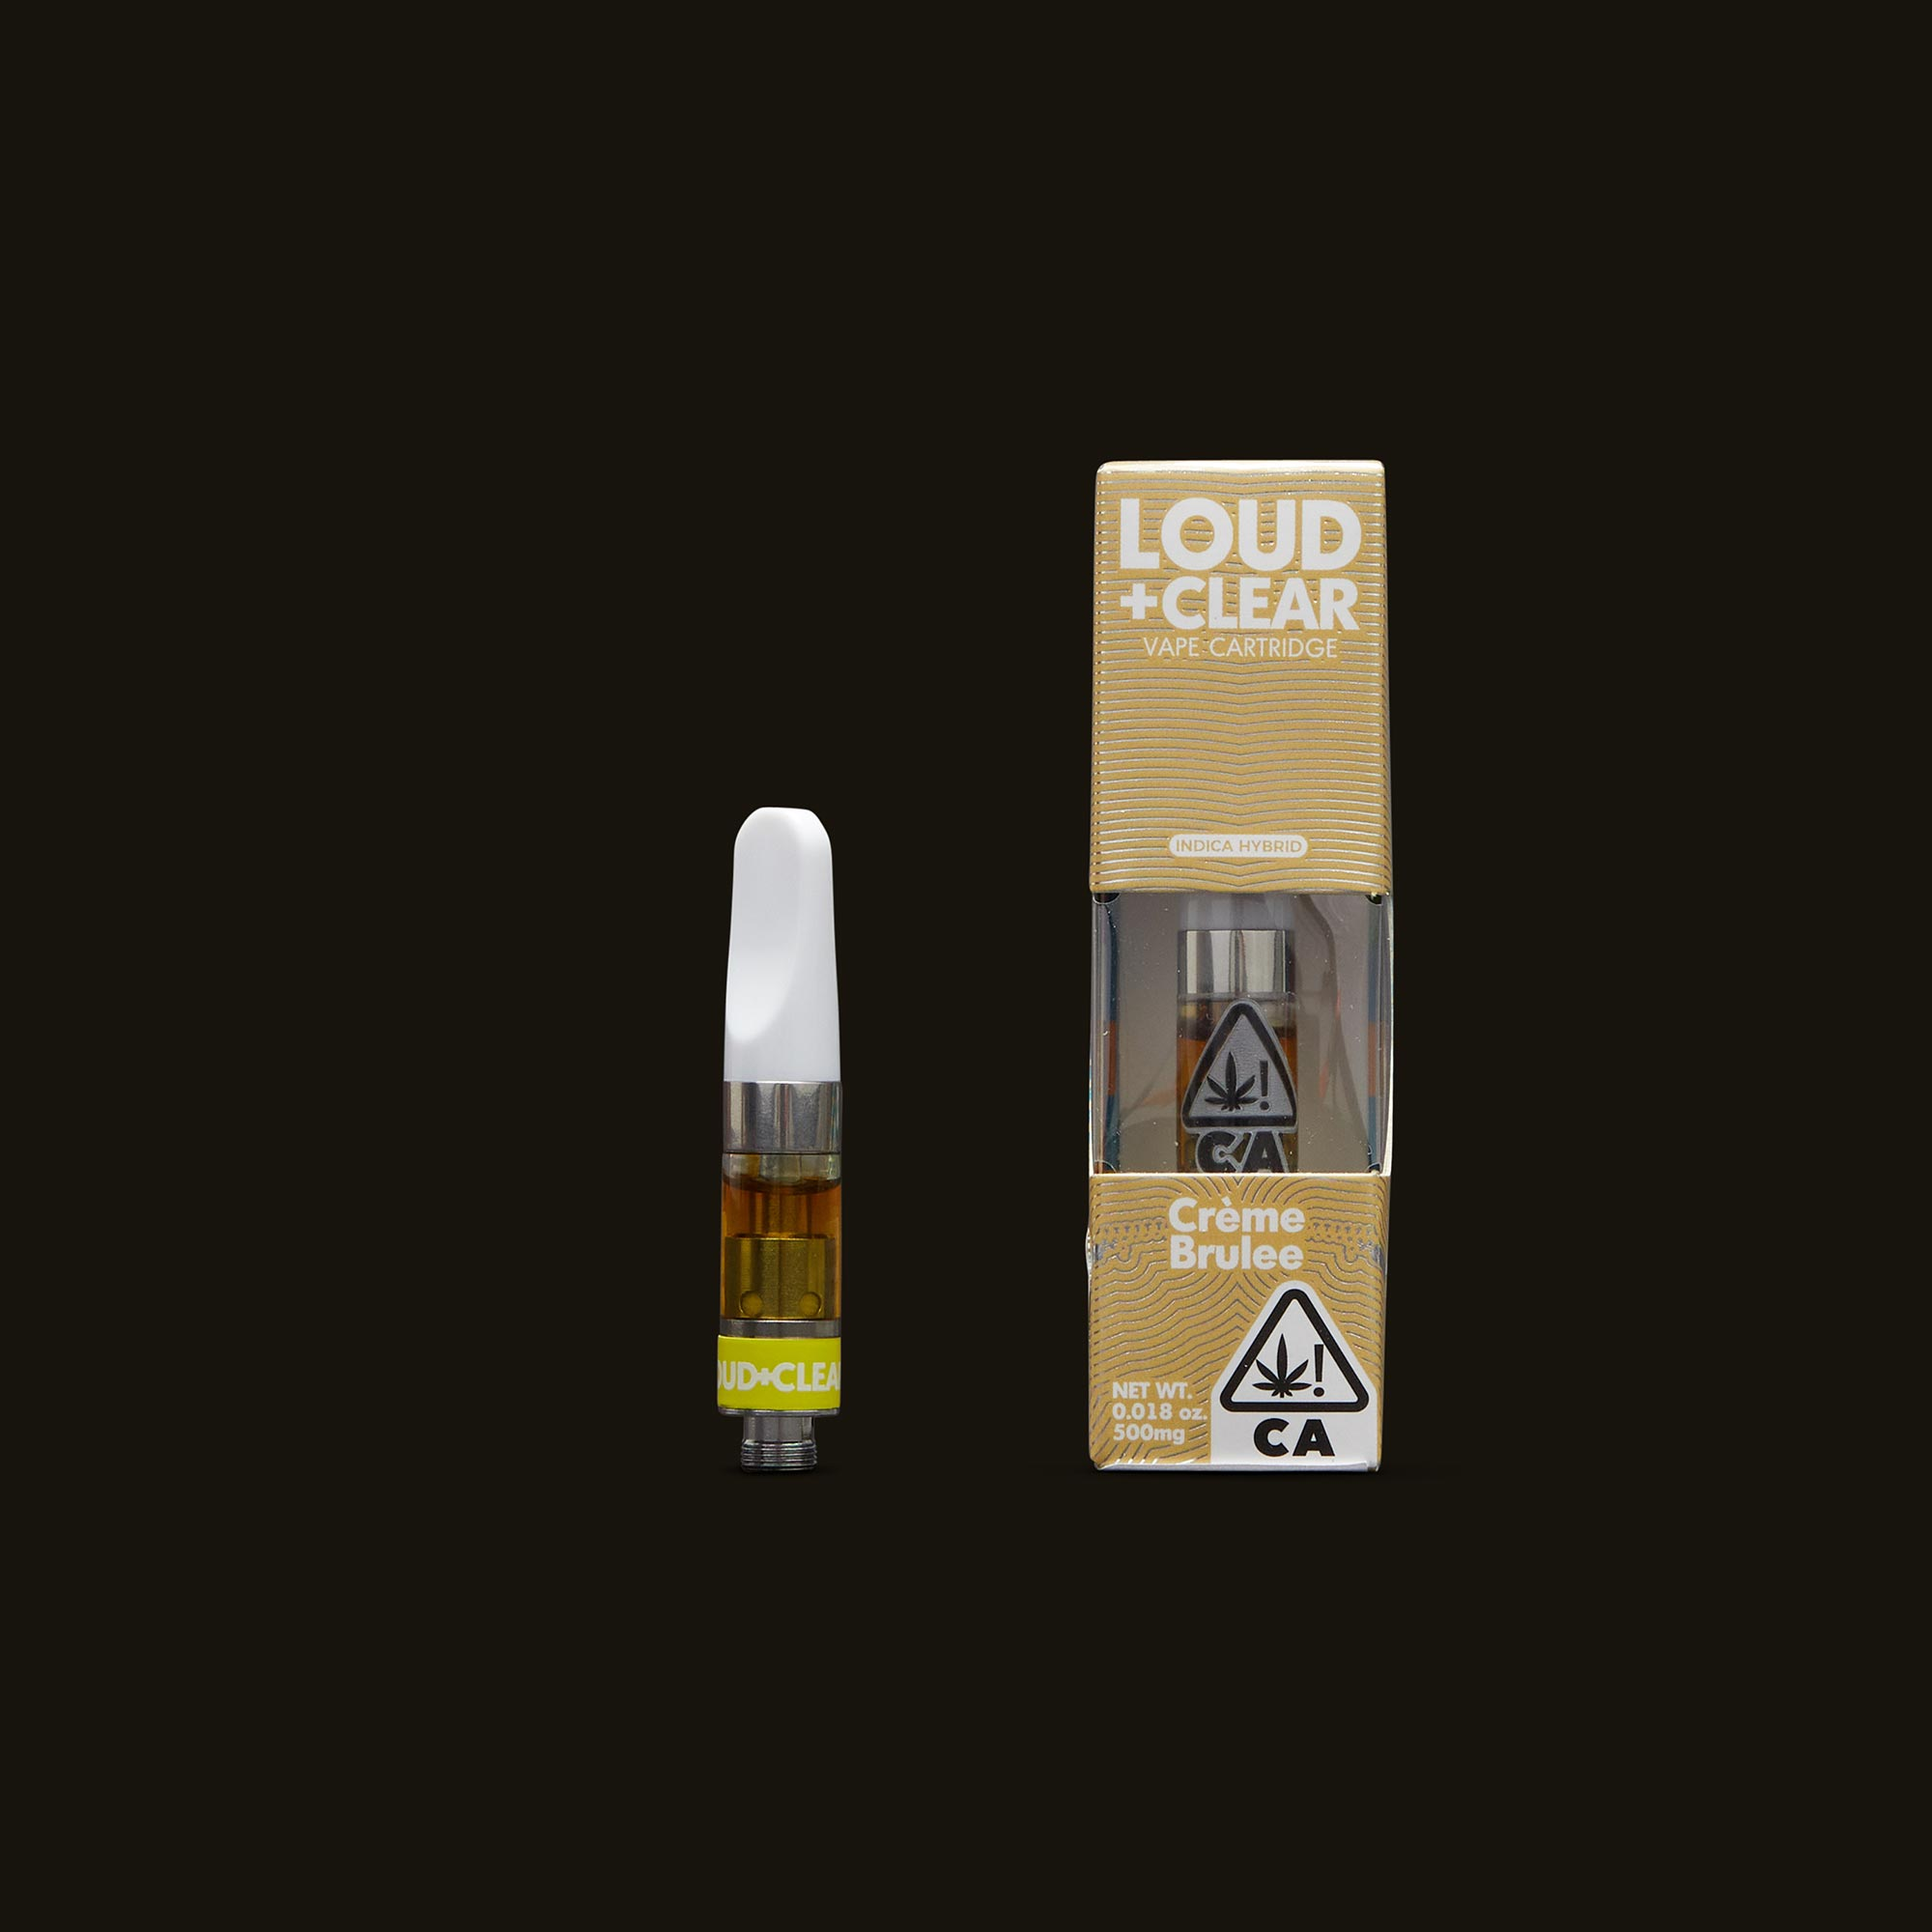 AbsoluteXtracts Creme Brulee by Loud + Clear